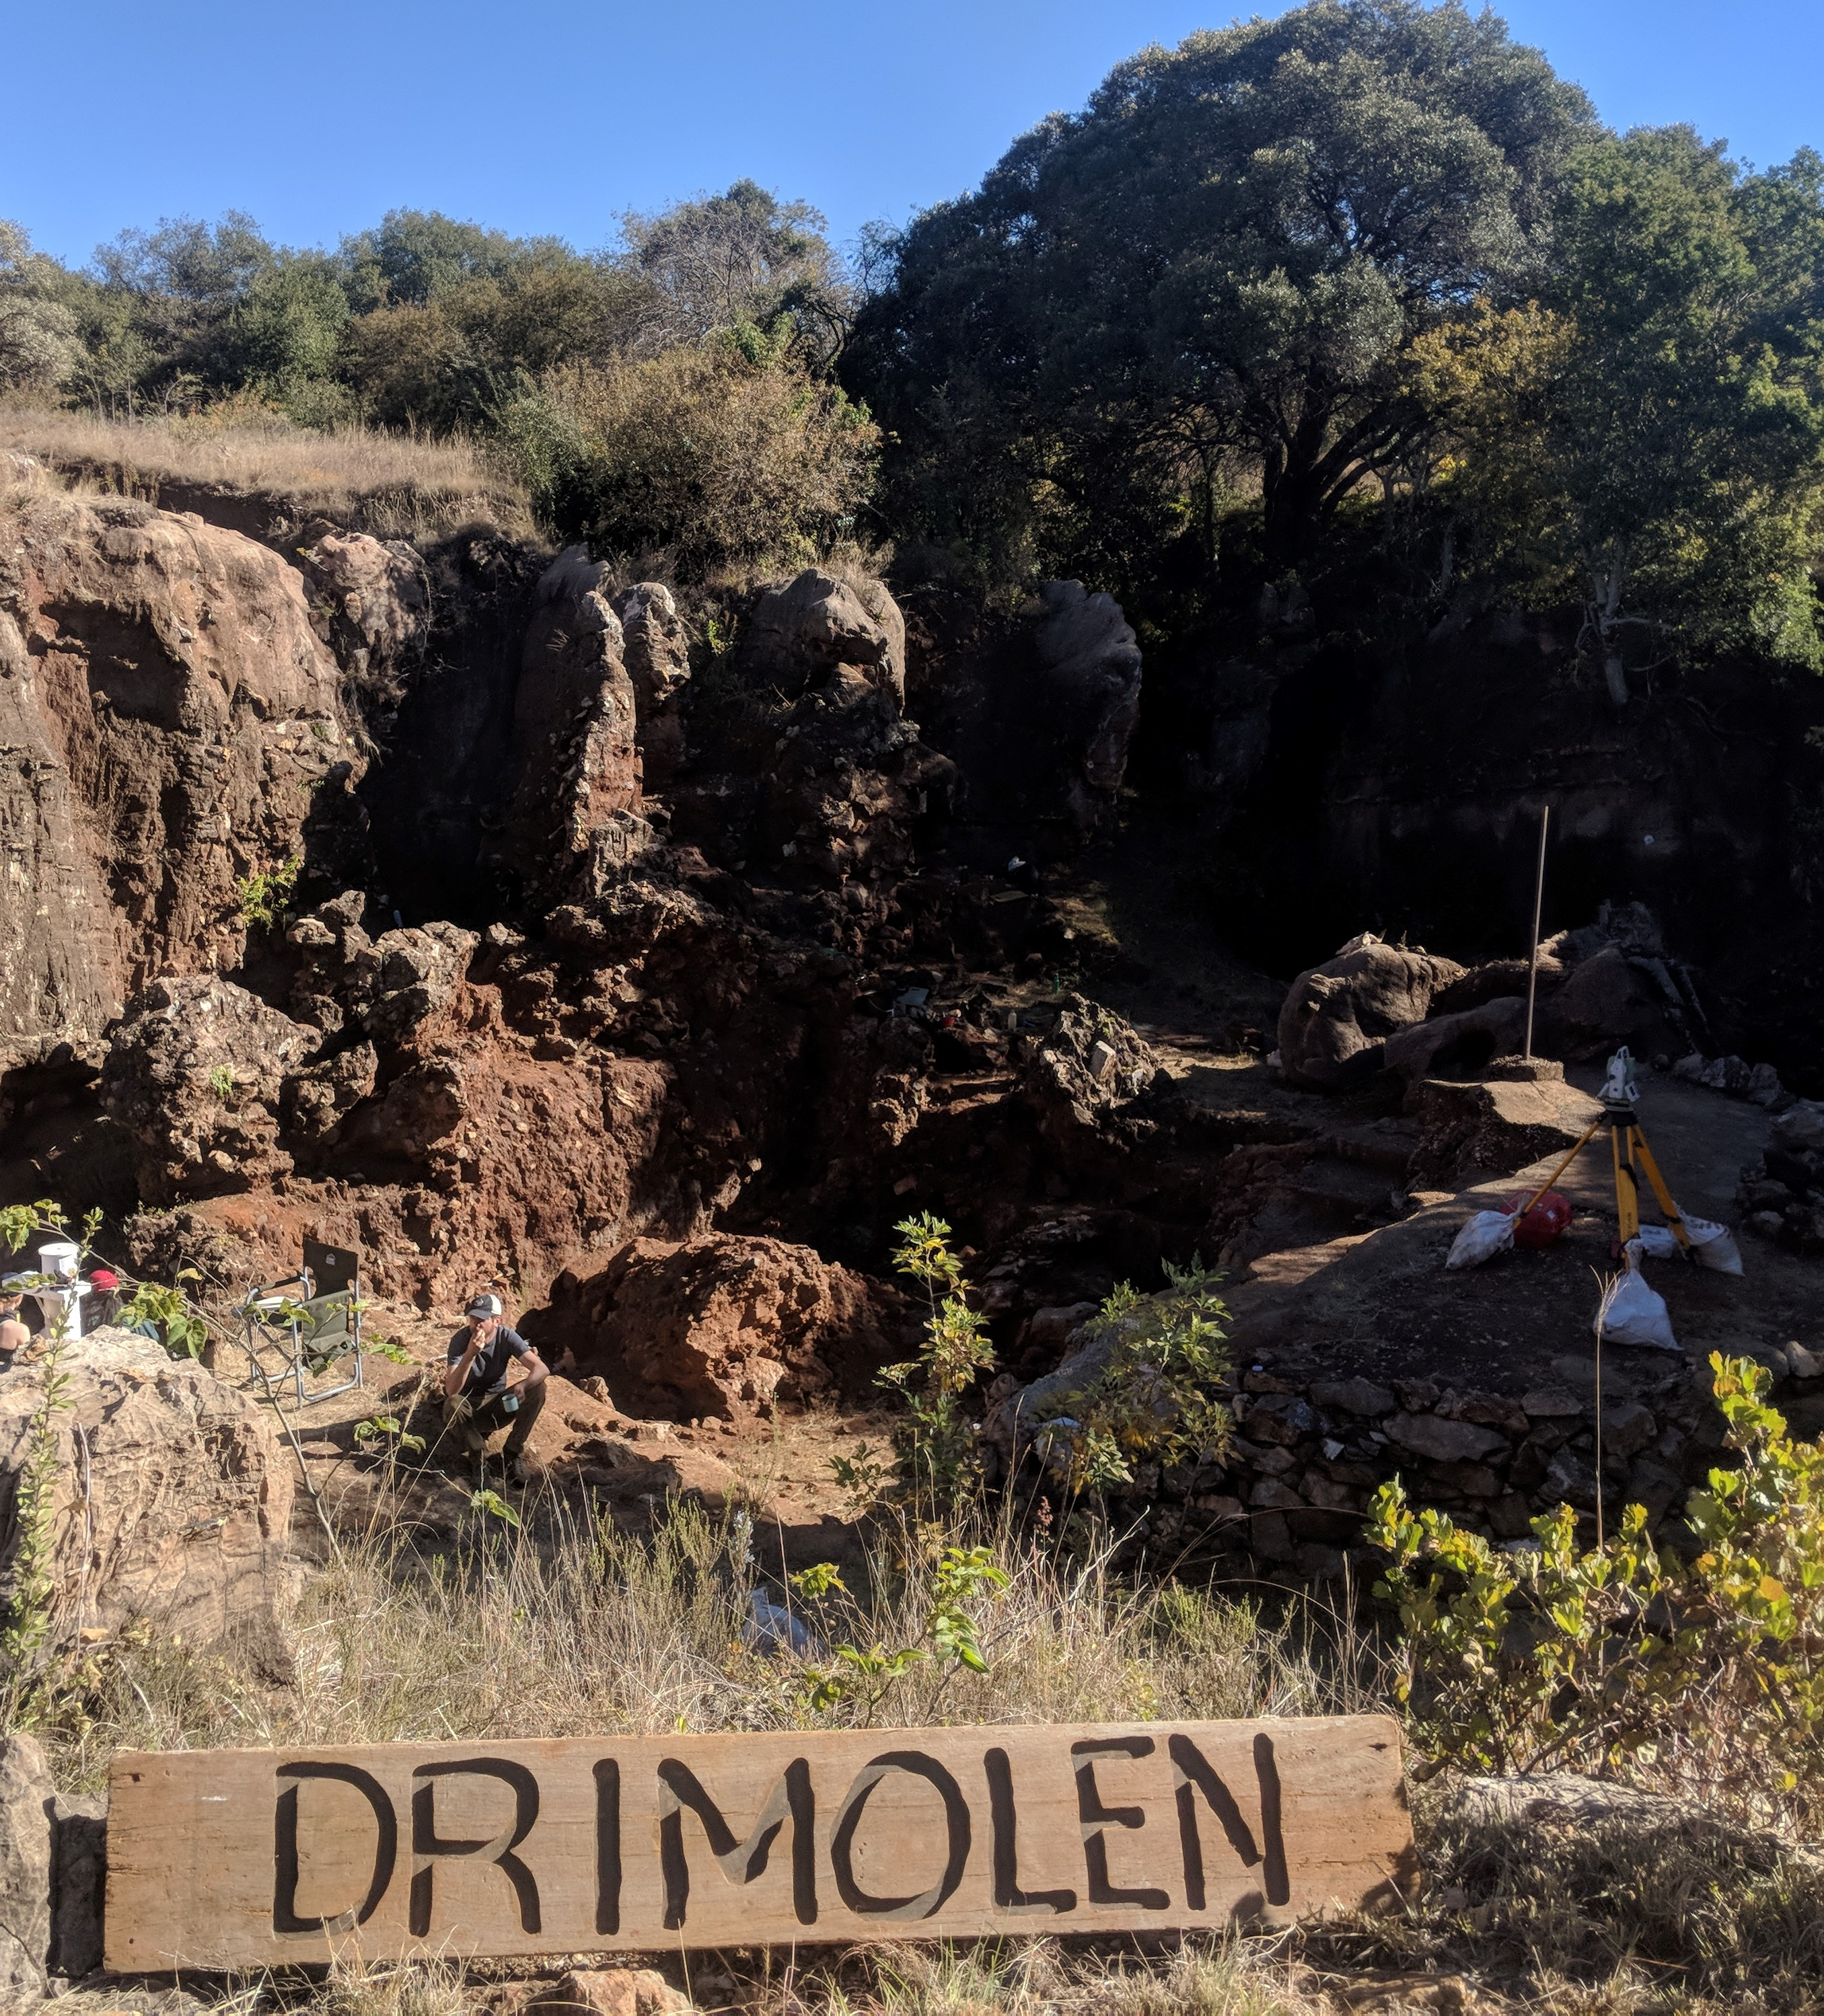 The Drimolen fossil site in the Cradle of Humankind, near Johannesburg